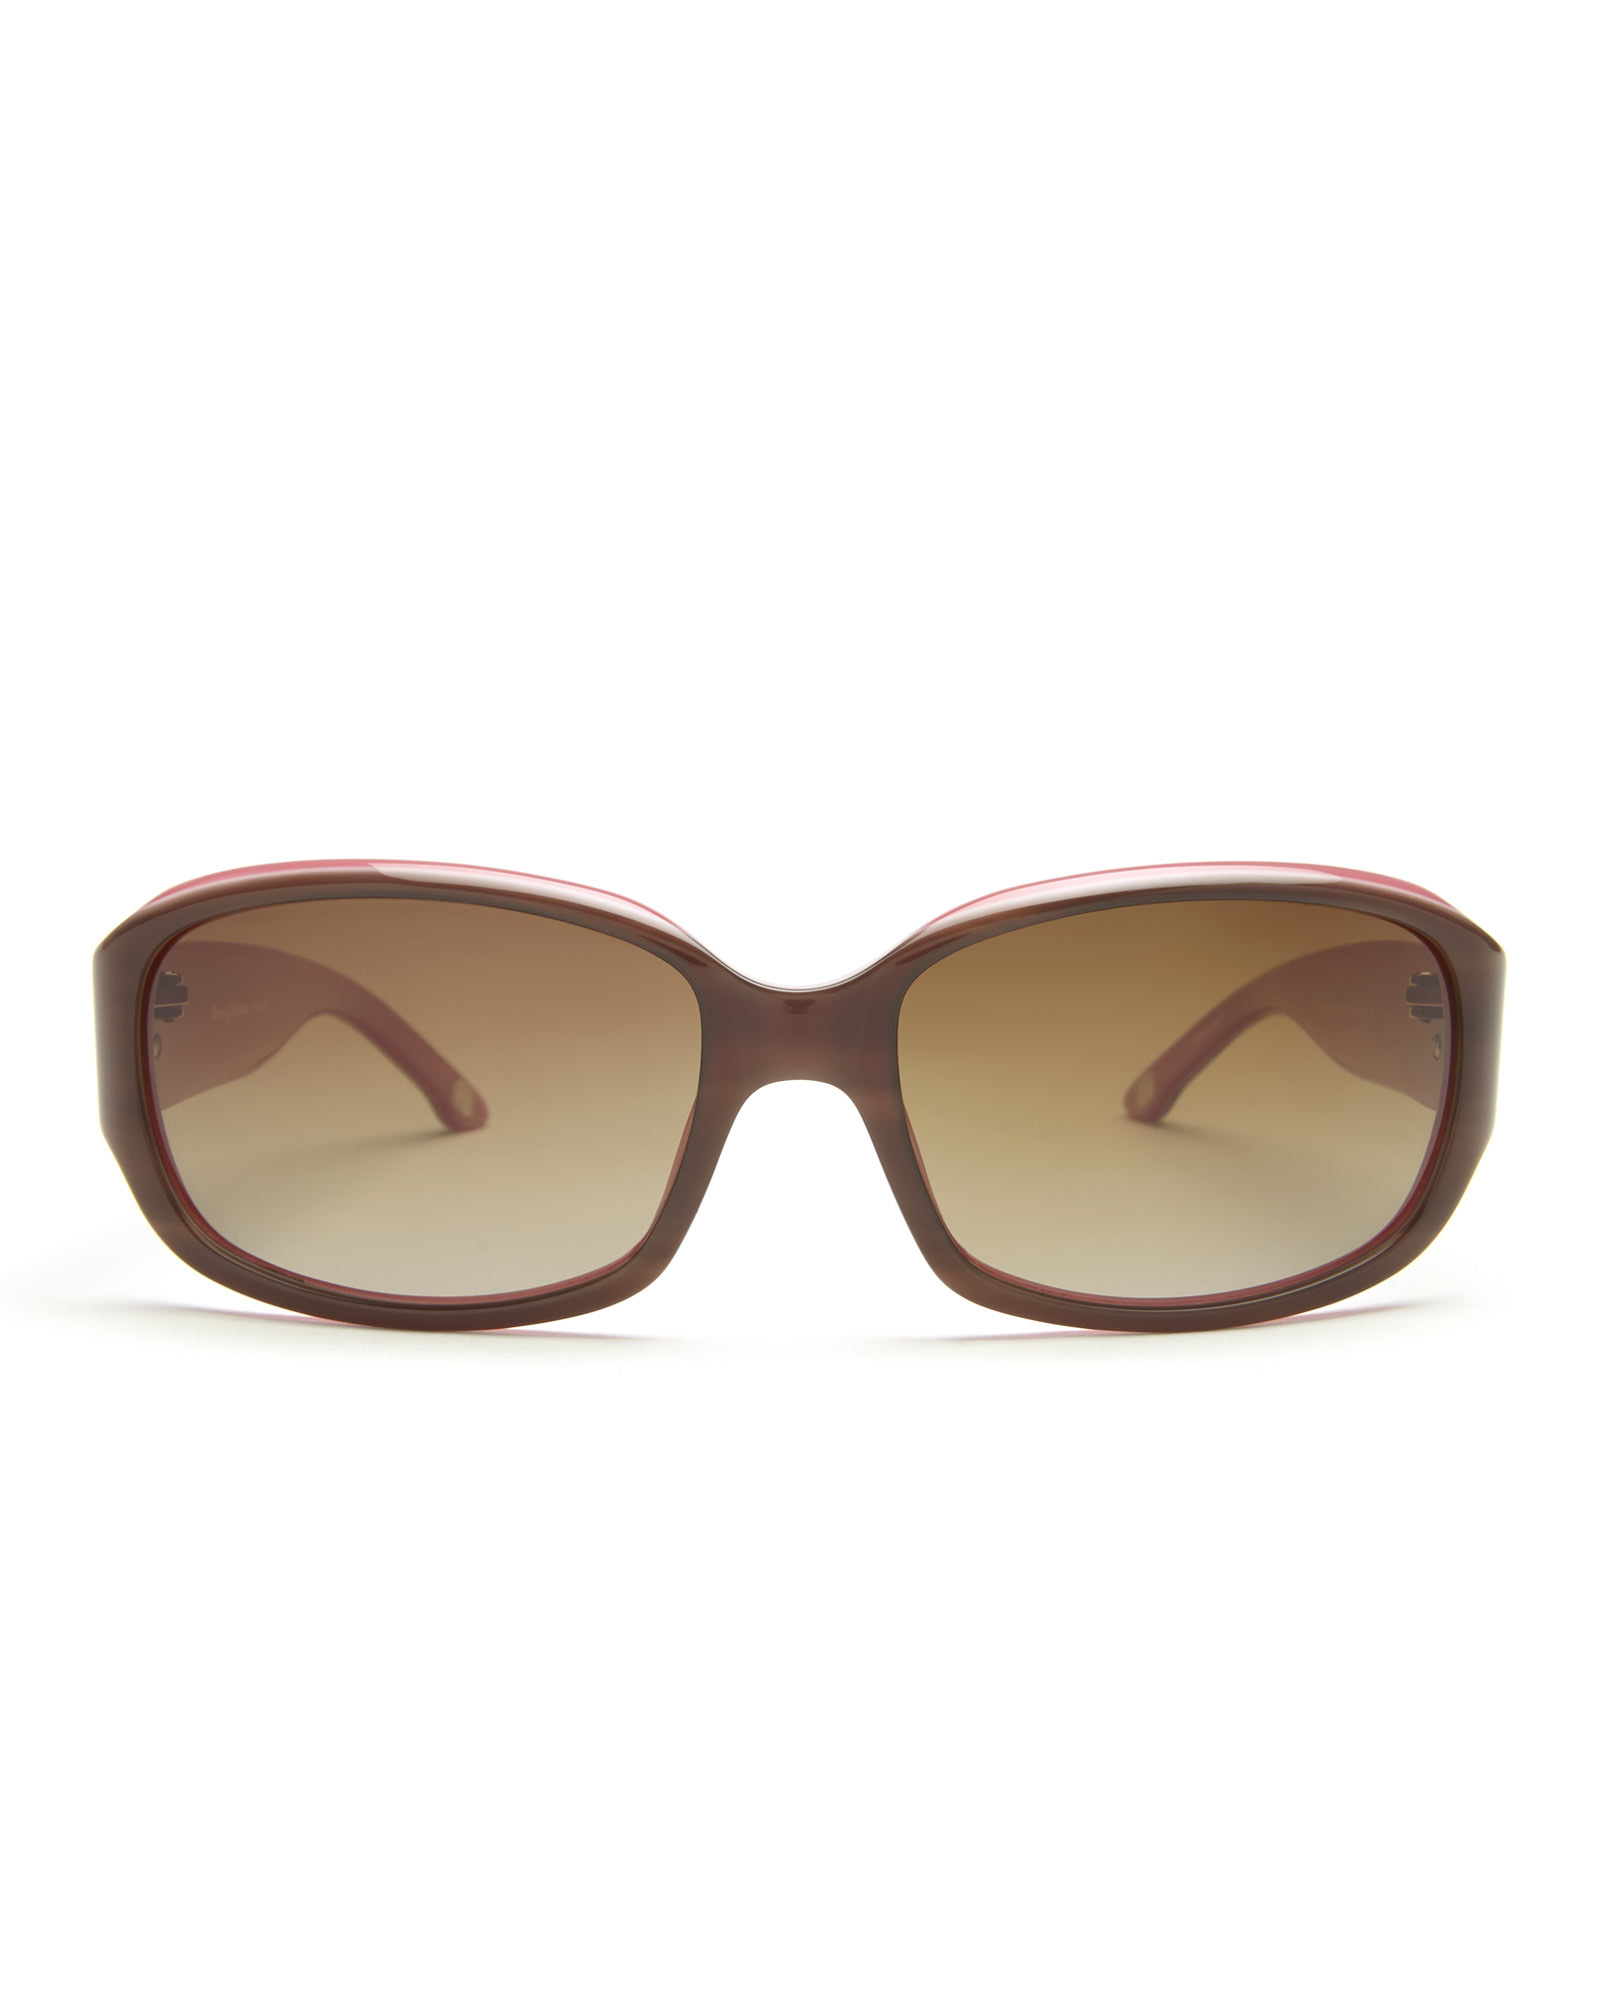 Tommy Bahama Polarized Sunglasses  tommy bahama tb7004 brown pink rectangle polarized sunglasses in